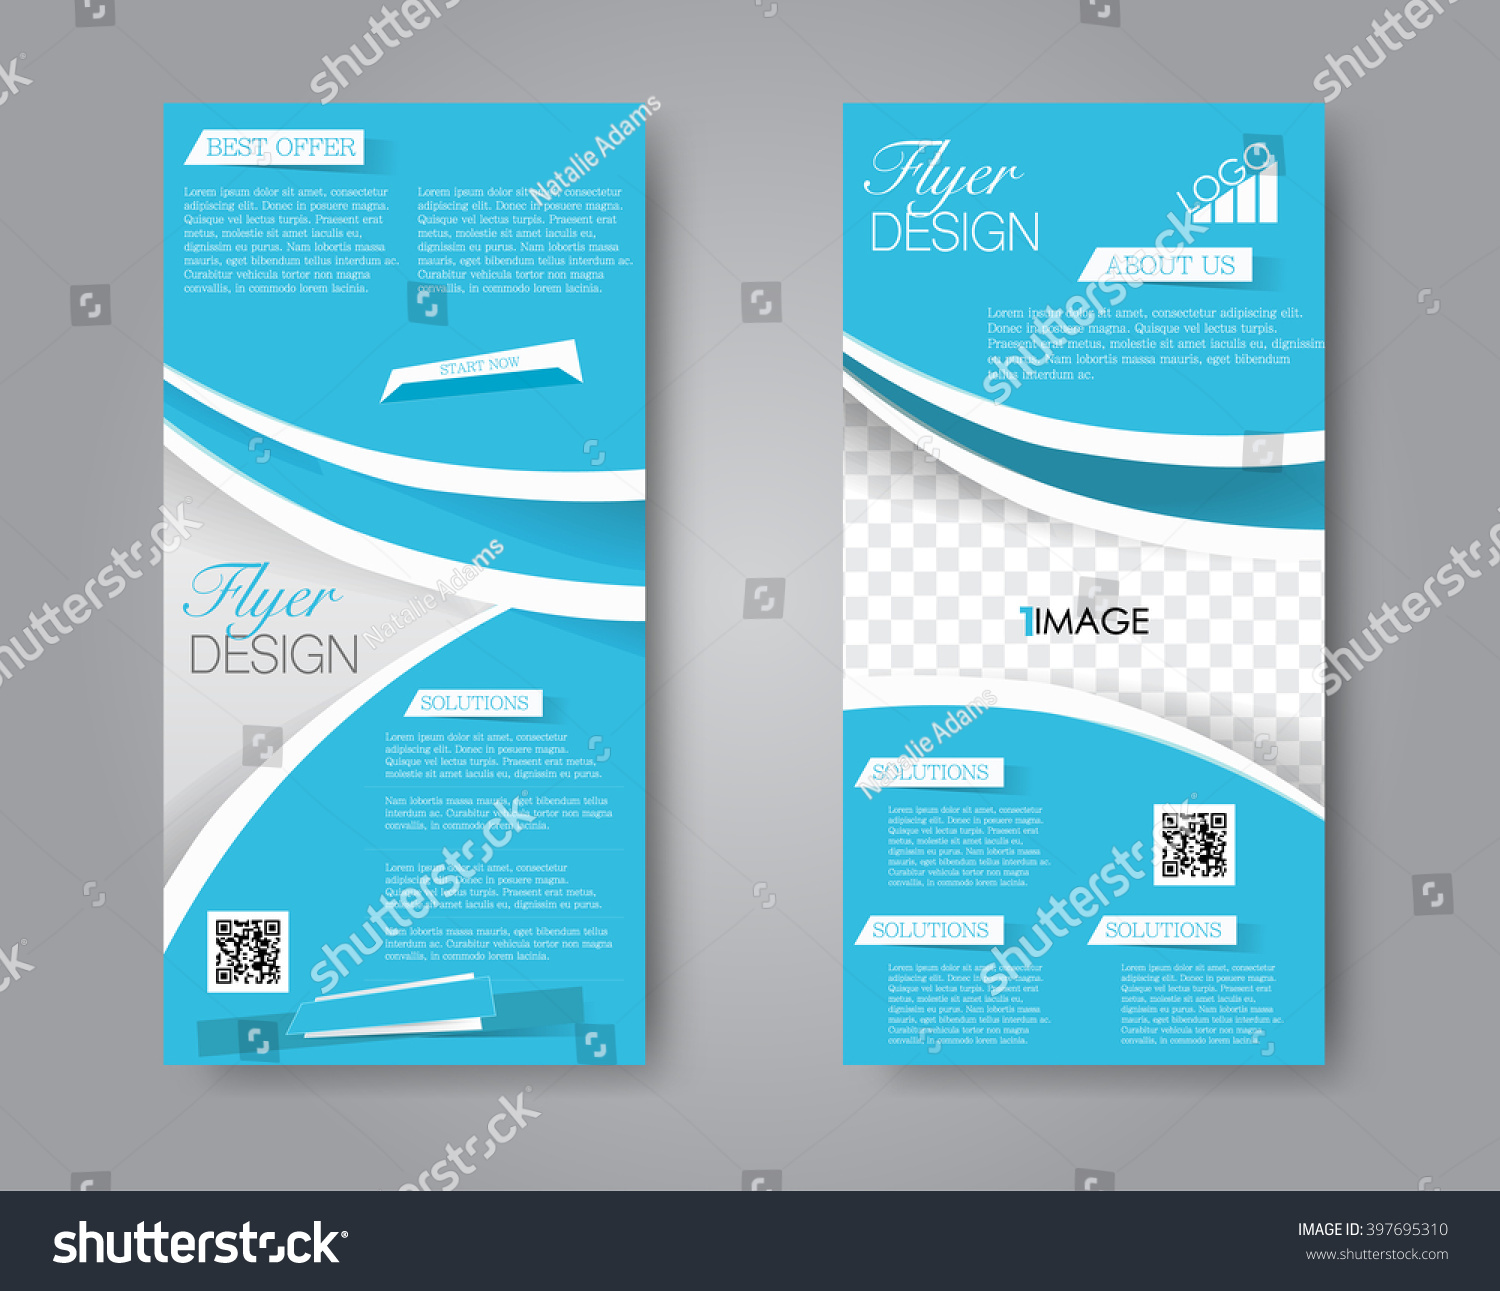 Nice 1 Page Resume Format Free Download Thick 100 Free Resume Builder And Download Clean 100 Free Resume Builder Online 1099 Contract Template Youthful 15 Year Old Resume Brown2 Circle Template Vector Flyer Leaflet Design Set Two Stock Vector 397695310 ..